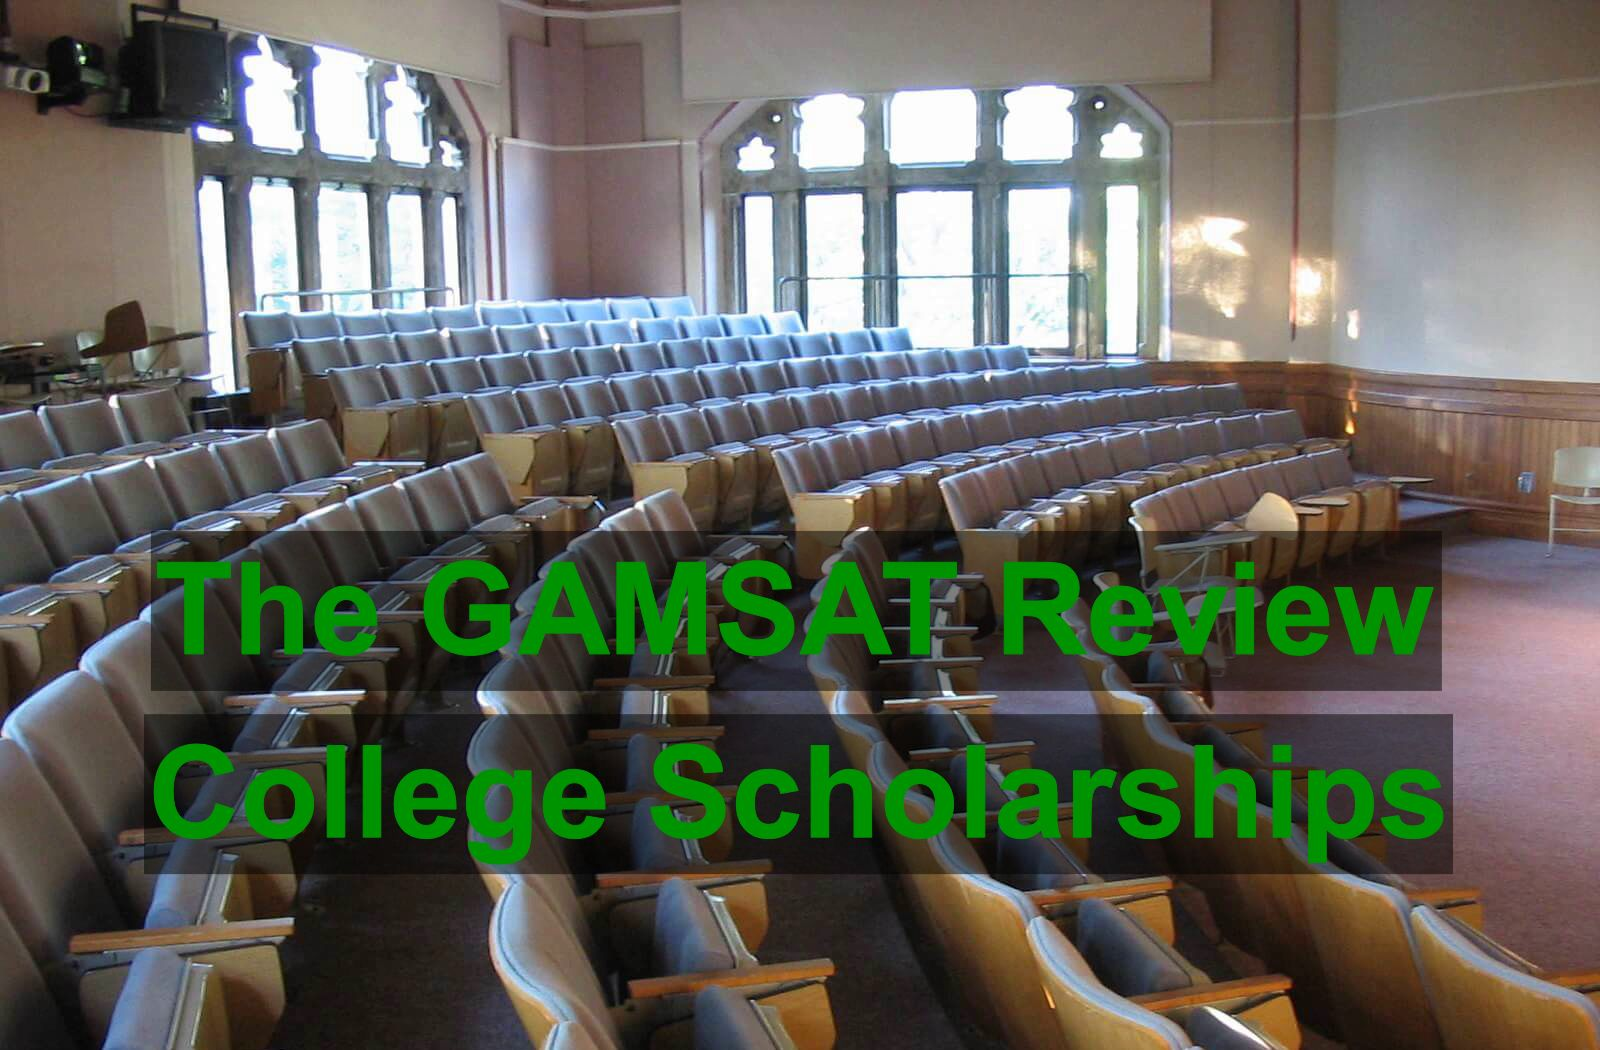 Gamsat Review College Scholarships